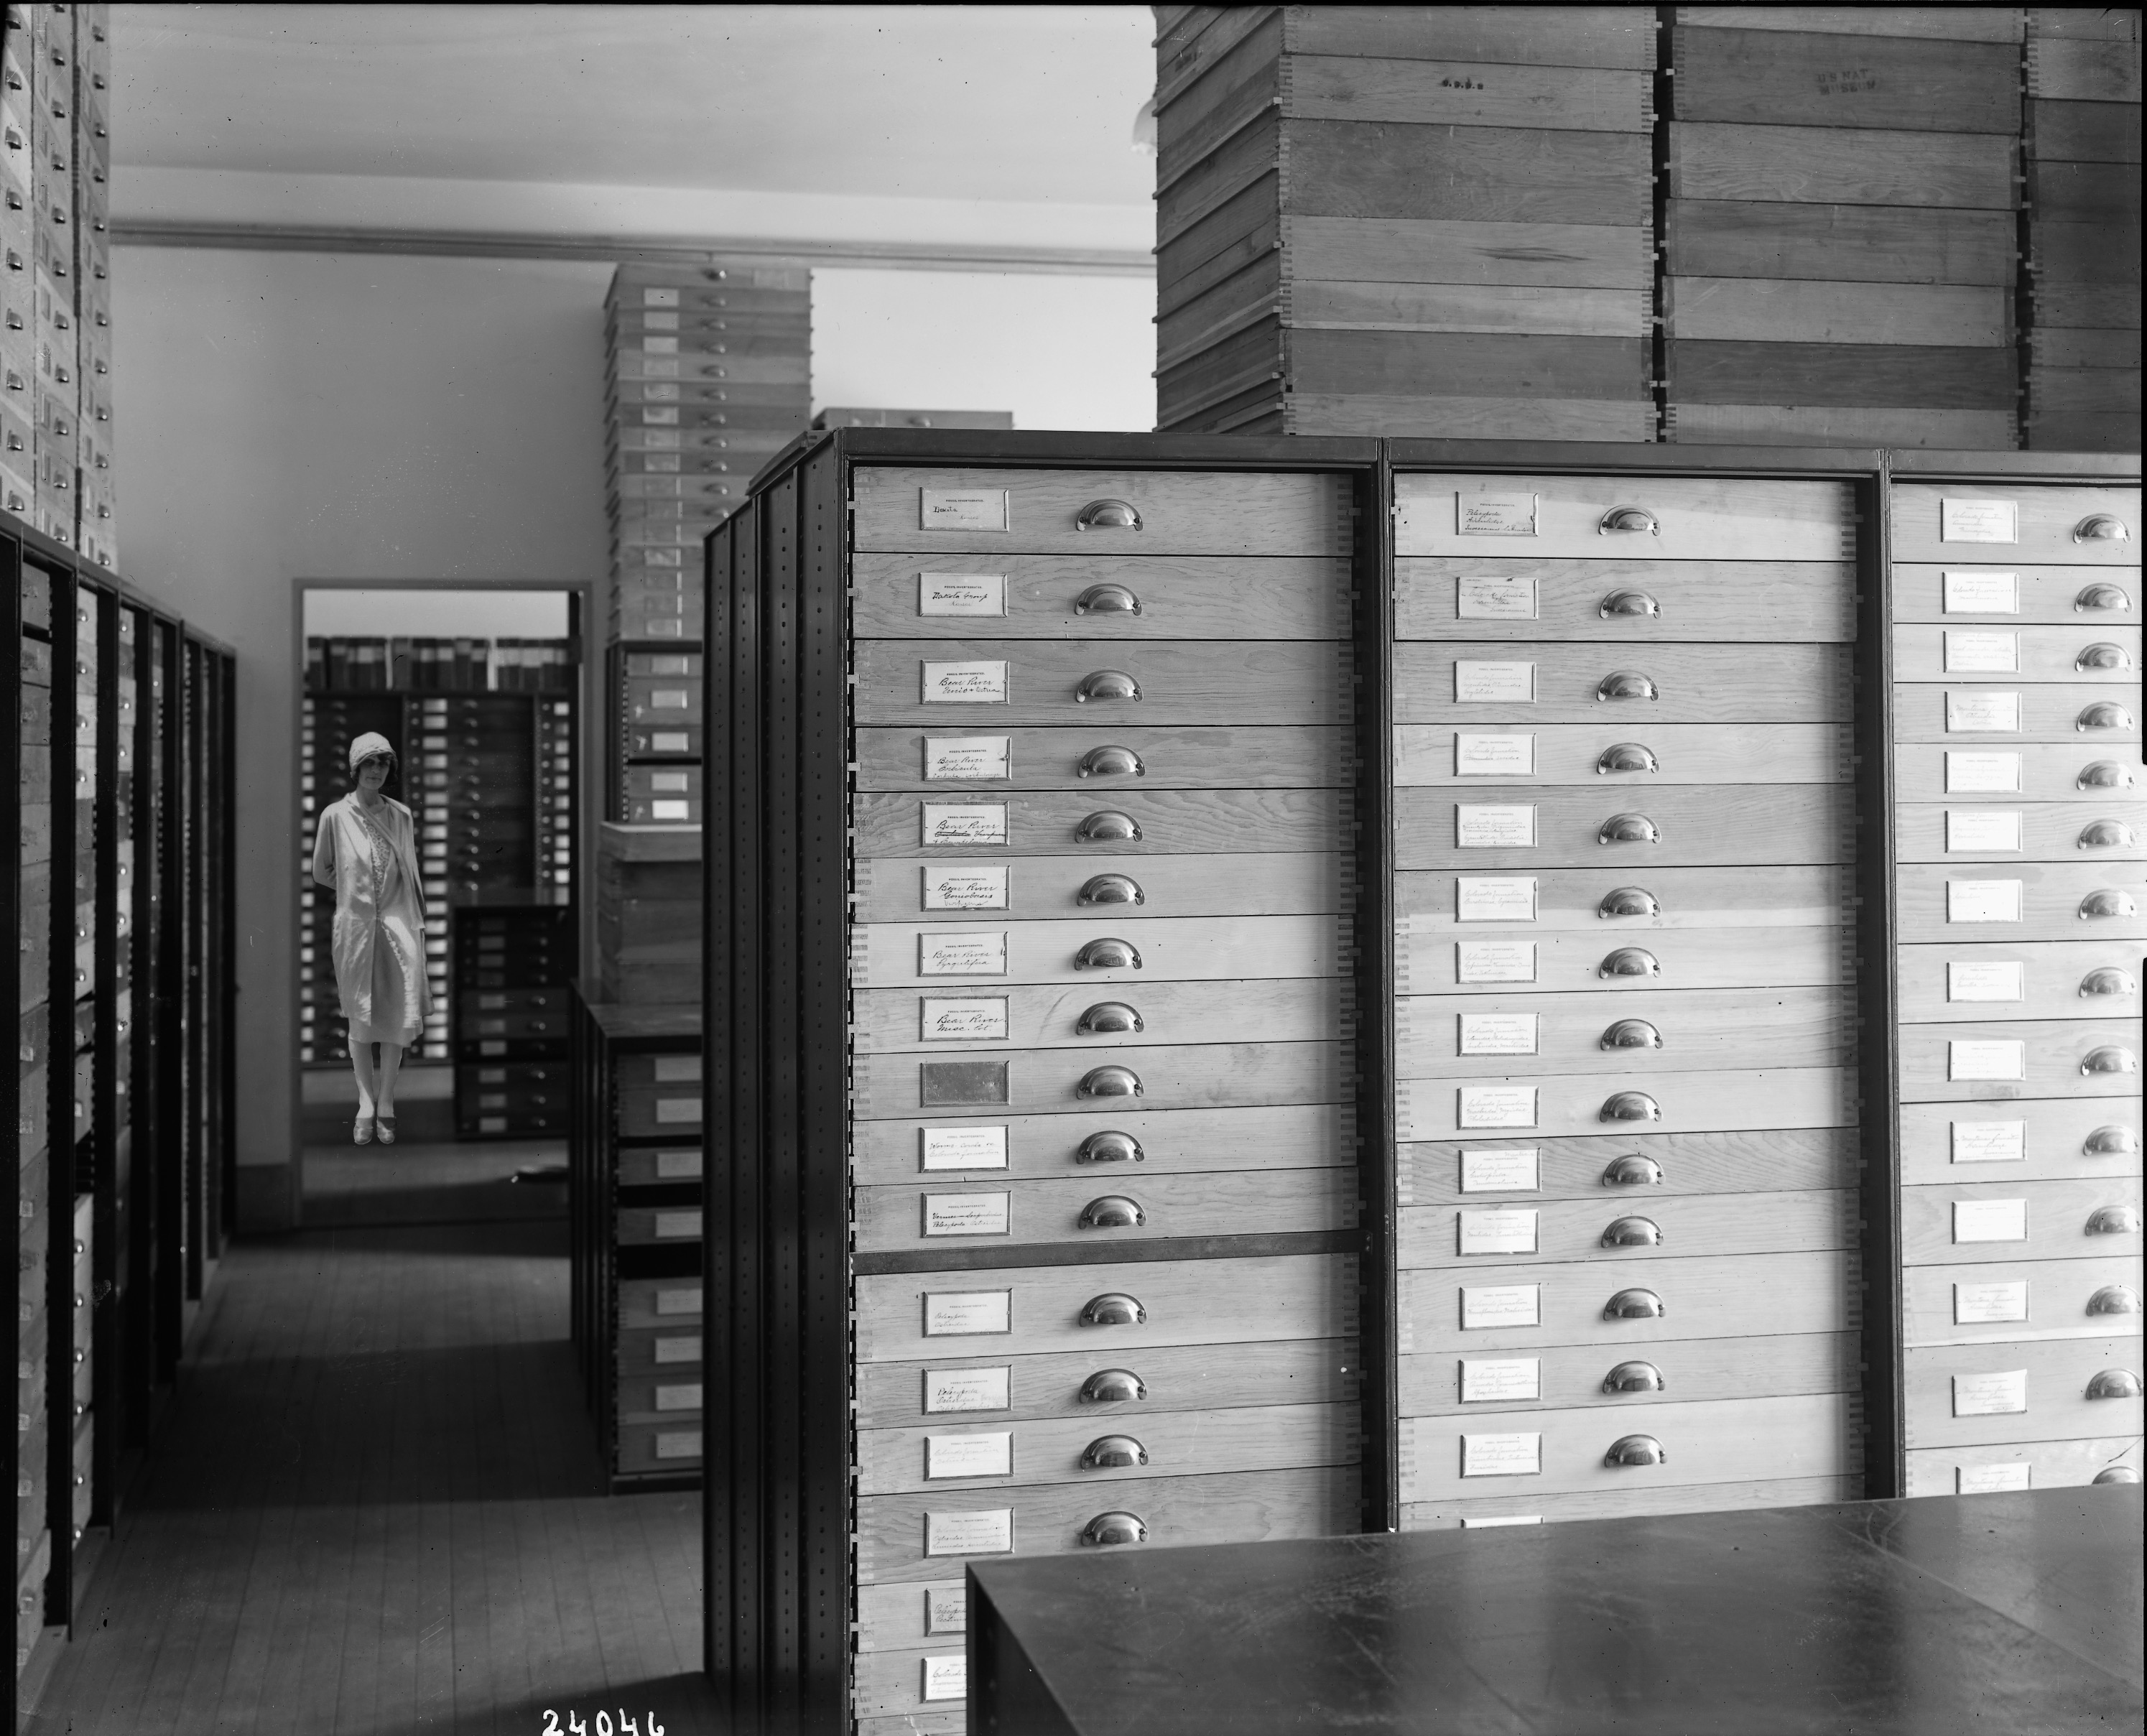 A woman stands in the doorway of an archival storage space. Labeled storage cabinets are in the room